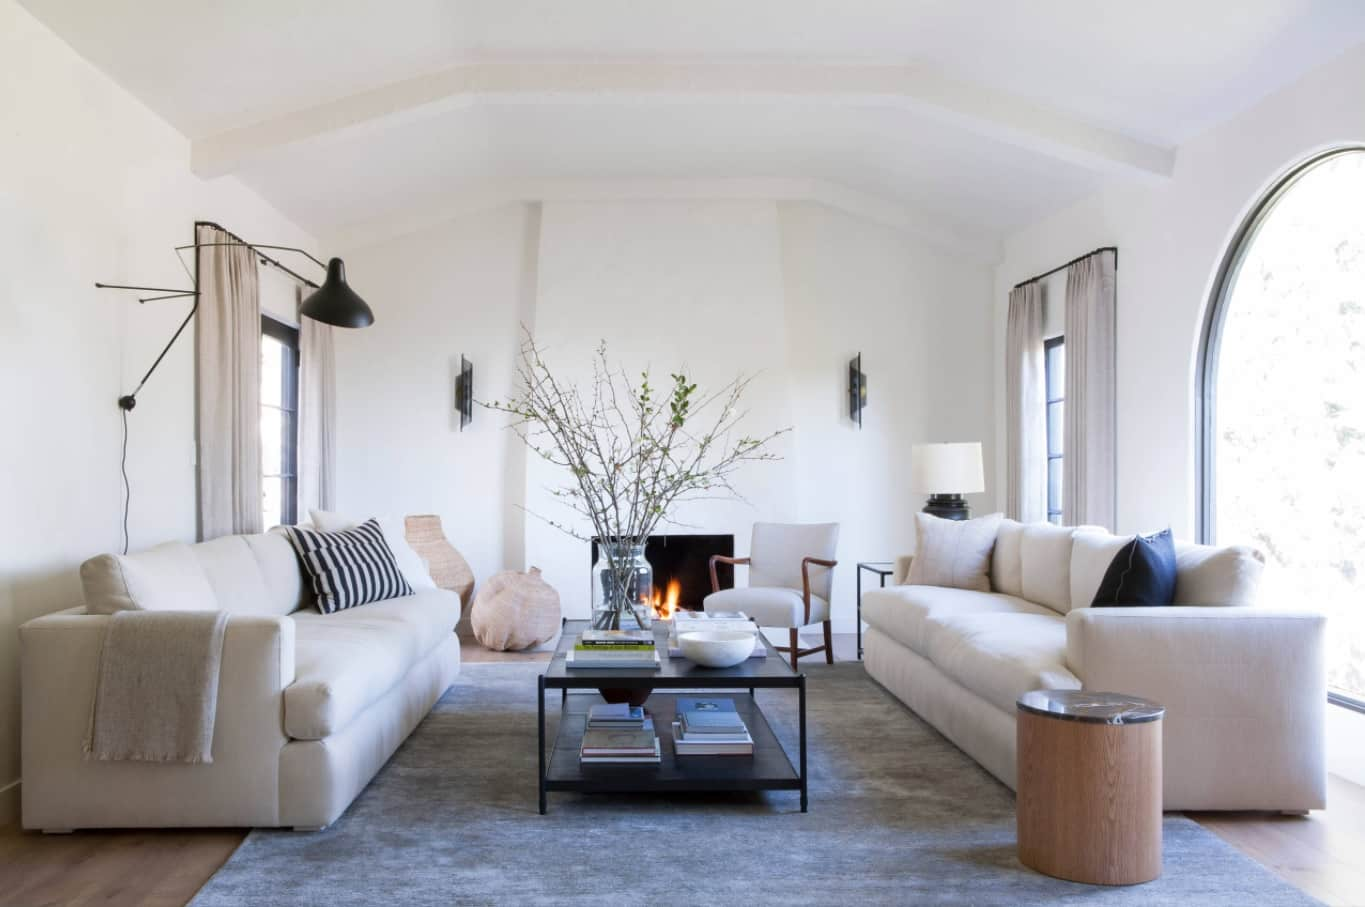 The Best Tips for Living Room Decoration. Simple casual design with black metal framed coffee table, two white sofas and even a real fireplace